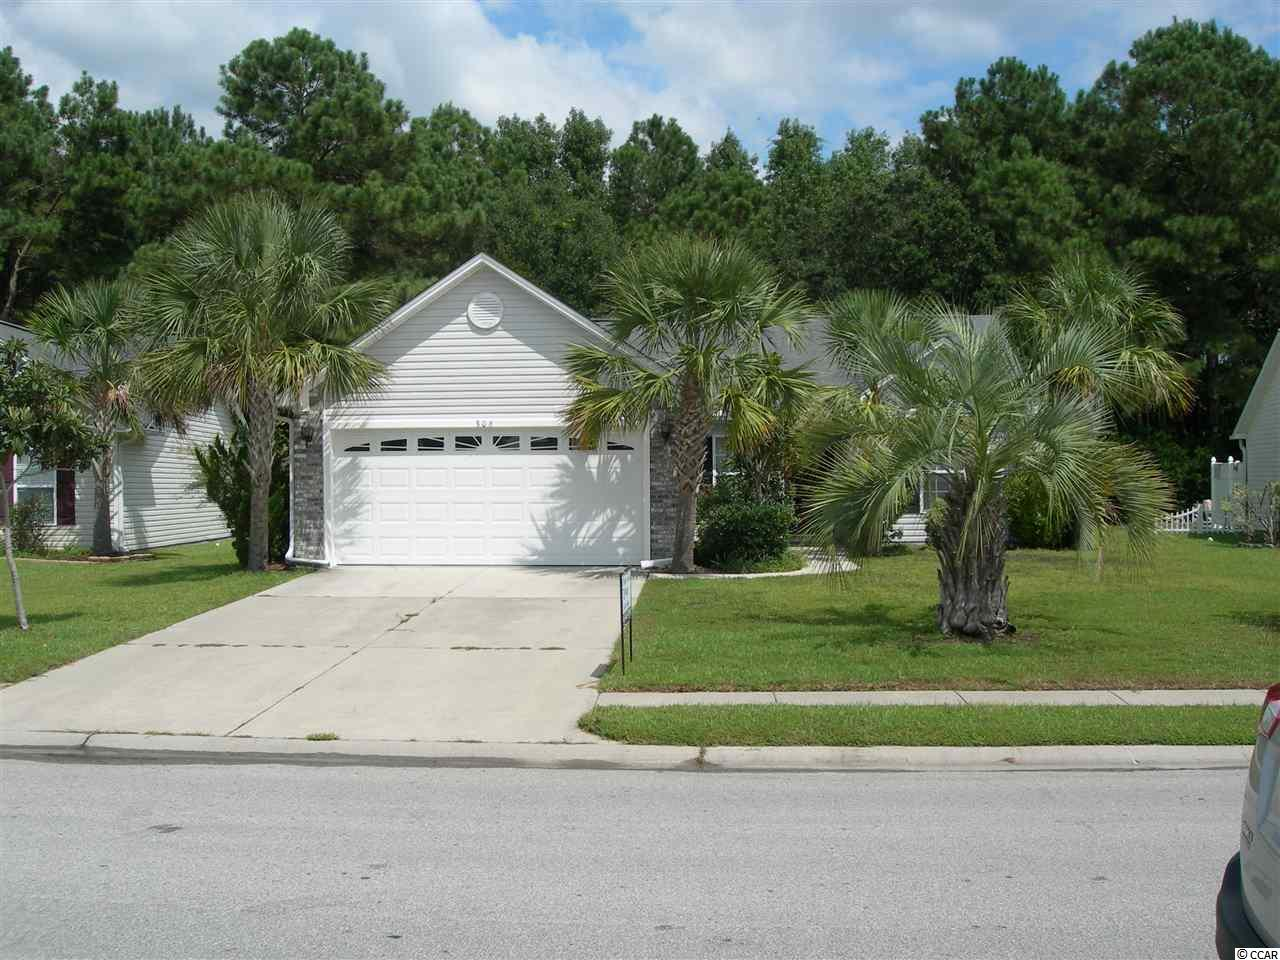 Great location in Little River, SC! 3 BR - 2 BA with 2 car garage for ample parking and storage shelves. Minutes to the bars and restaurants at Minneola waterfront plus other great restaurants and groceries stores. Near the Little River fishing village. Just a few minutes to the Cherry Grove beach. Enjoy great beach music and multiple Summer events on Main Street in North Myrtle Beach. Shag capital of the world is also here for all those who like to shag the night away. La Belle Amie vineyard has many wine tasting events, dancing, concerts and parties in Little River. Large living room area with split bedrooms on one side and MBR on the other side for privacy, separate laundry room, very light and every room has a window. Home has a sprinkler system and well as an electronic pet fence (but never used either) Very private back yard with 13' of 6' walls on either side, the back is cleared with a horse shoe court. Some low maintenance landscaping all around the home with seven beautiful palm trees all on a larger nearly a third acre. Very quiet evenings with street lights if you want to walk at night on the concrete paths on both sides of the road. Amenities include a pool, hot tub and tennis court. Serenity and quiet lot and the kind of privacy few homes can offer. Come and see this lovely property! Great neighbors too! Make this your next primary home or vacation retreat! Square footage is approximate and not guaranteed and must be verified by buyer. Owner is agent. Thanks.